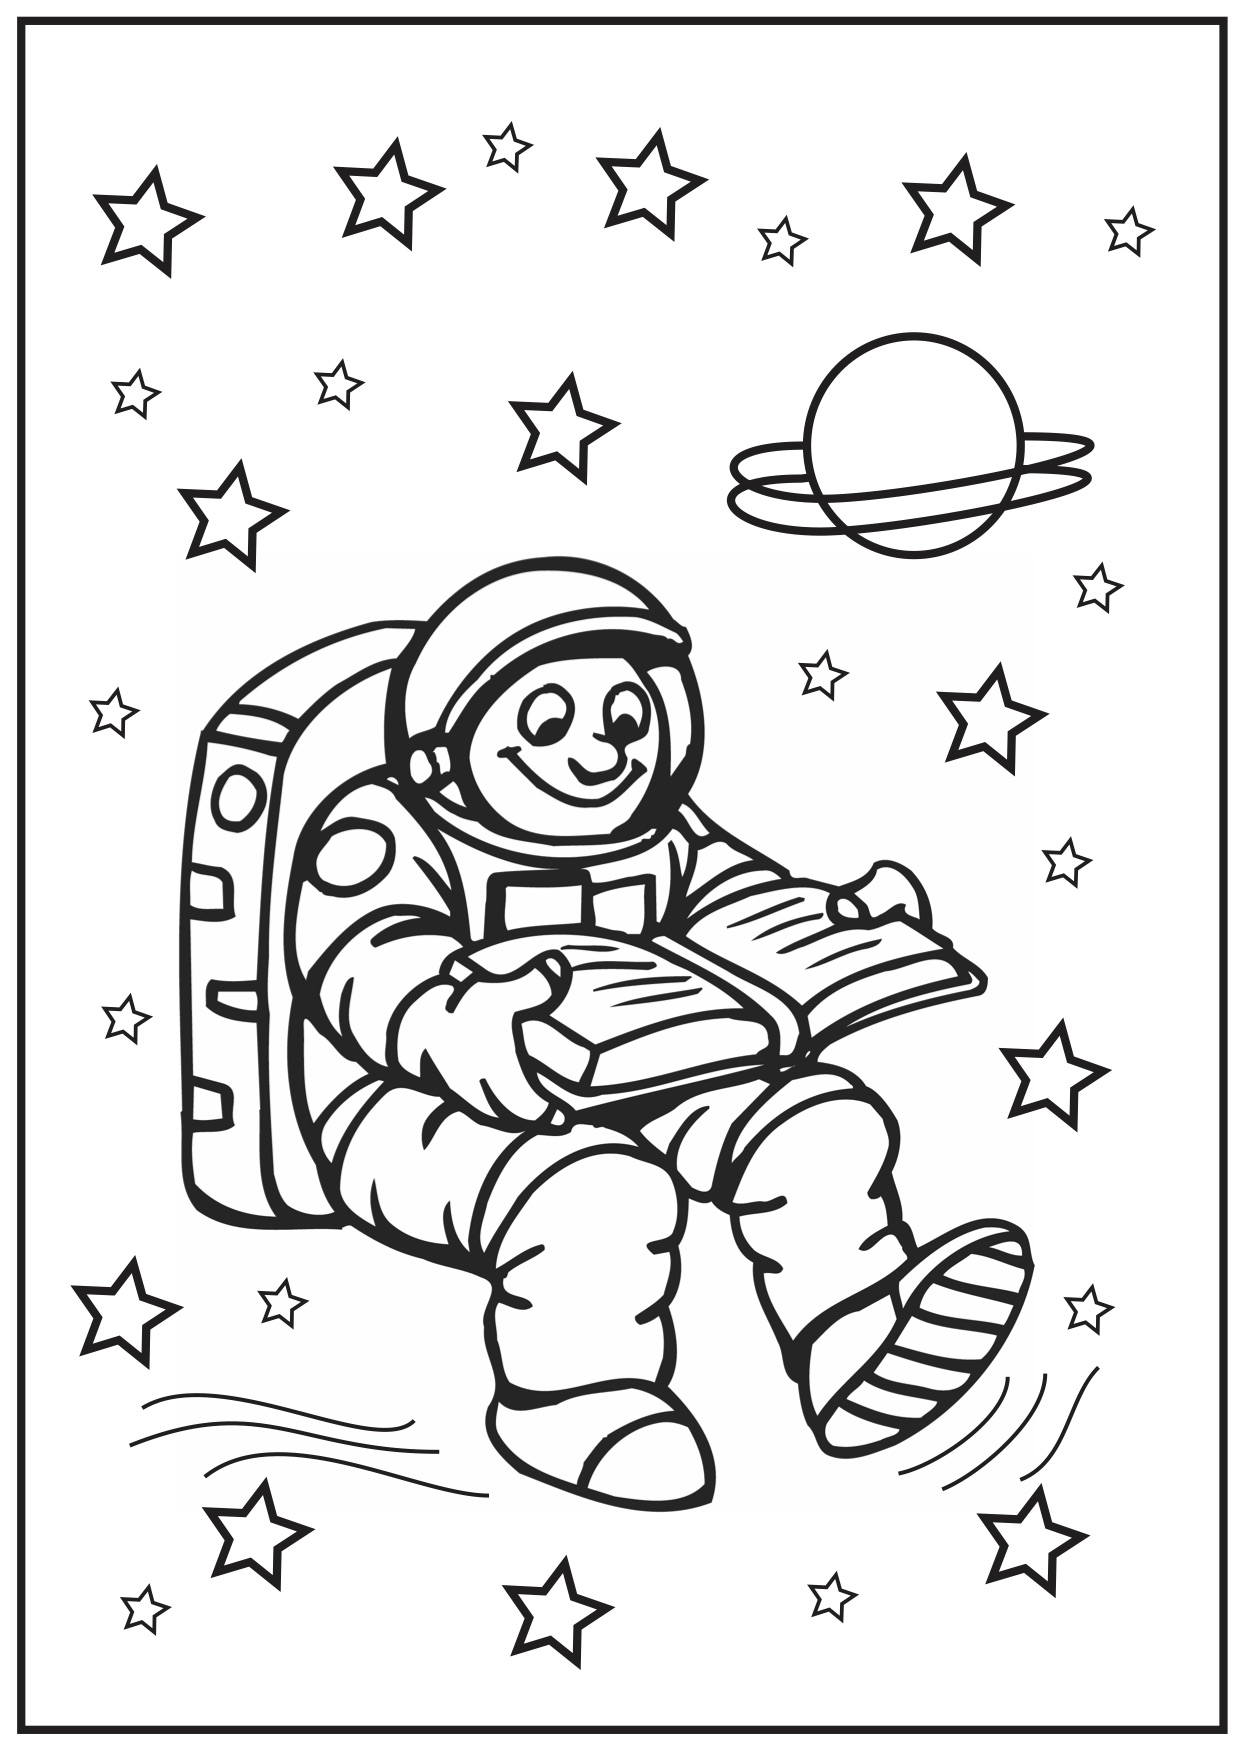 Homework Coloring Pages At Getcolorings